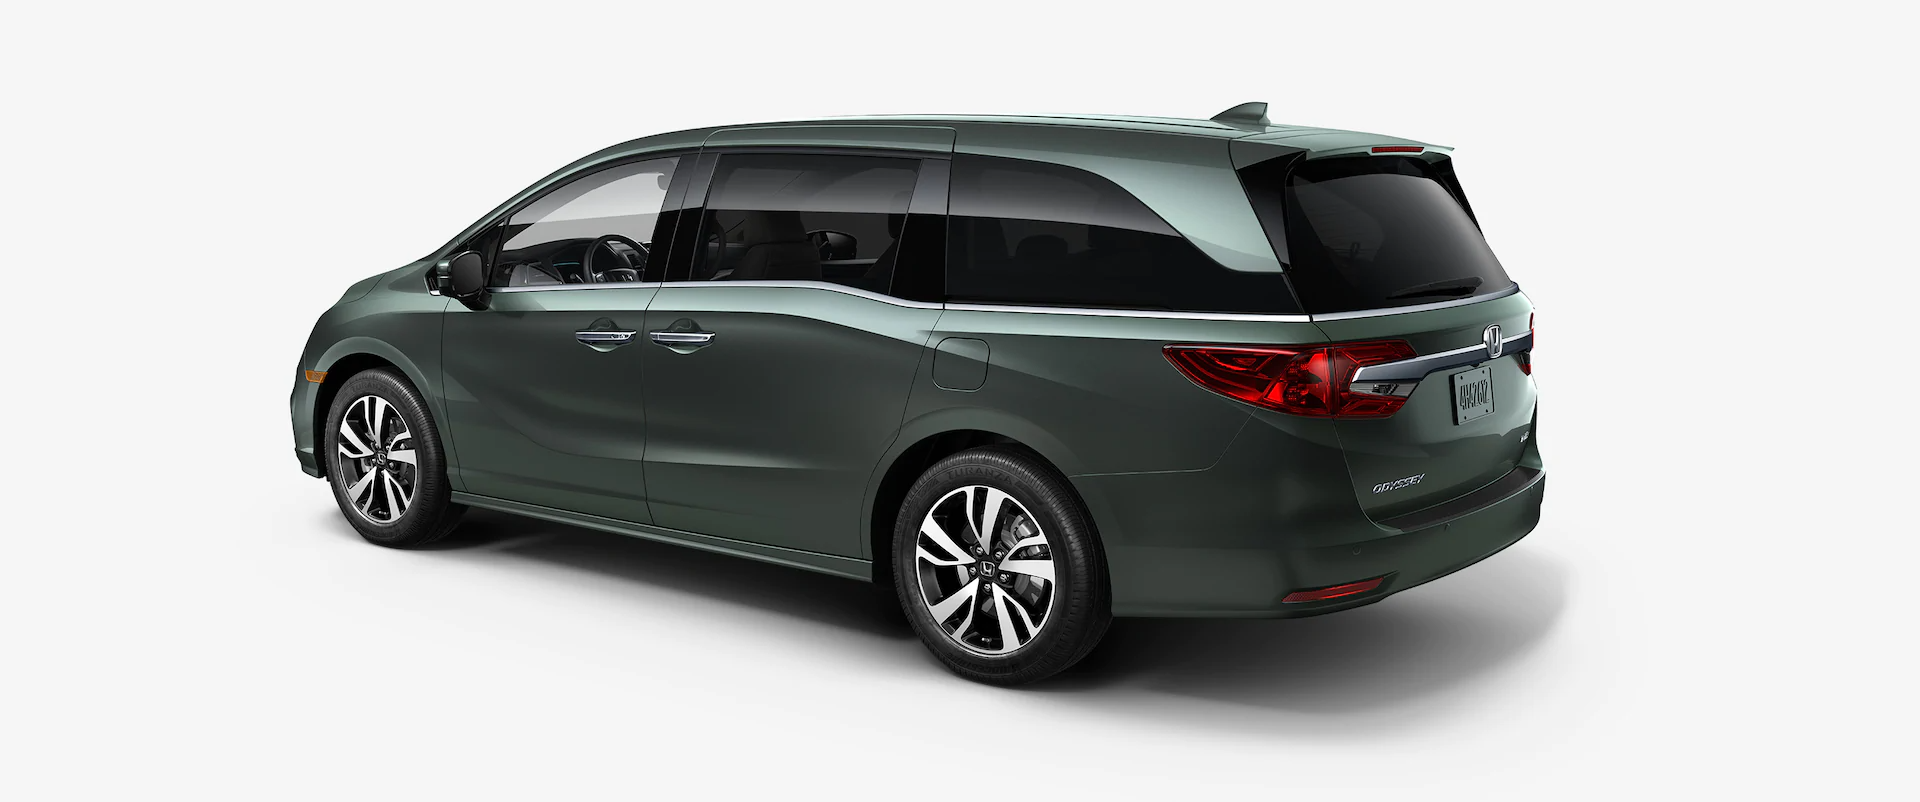 Trim Level Options of the 2020 Honda Odyssey Available in Everett